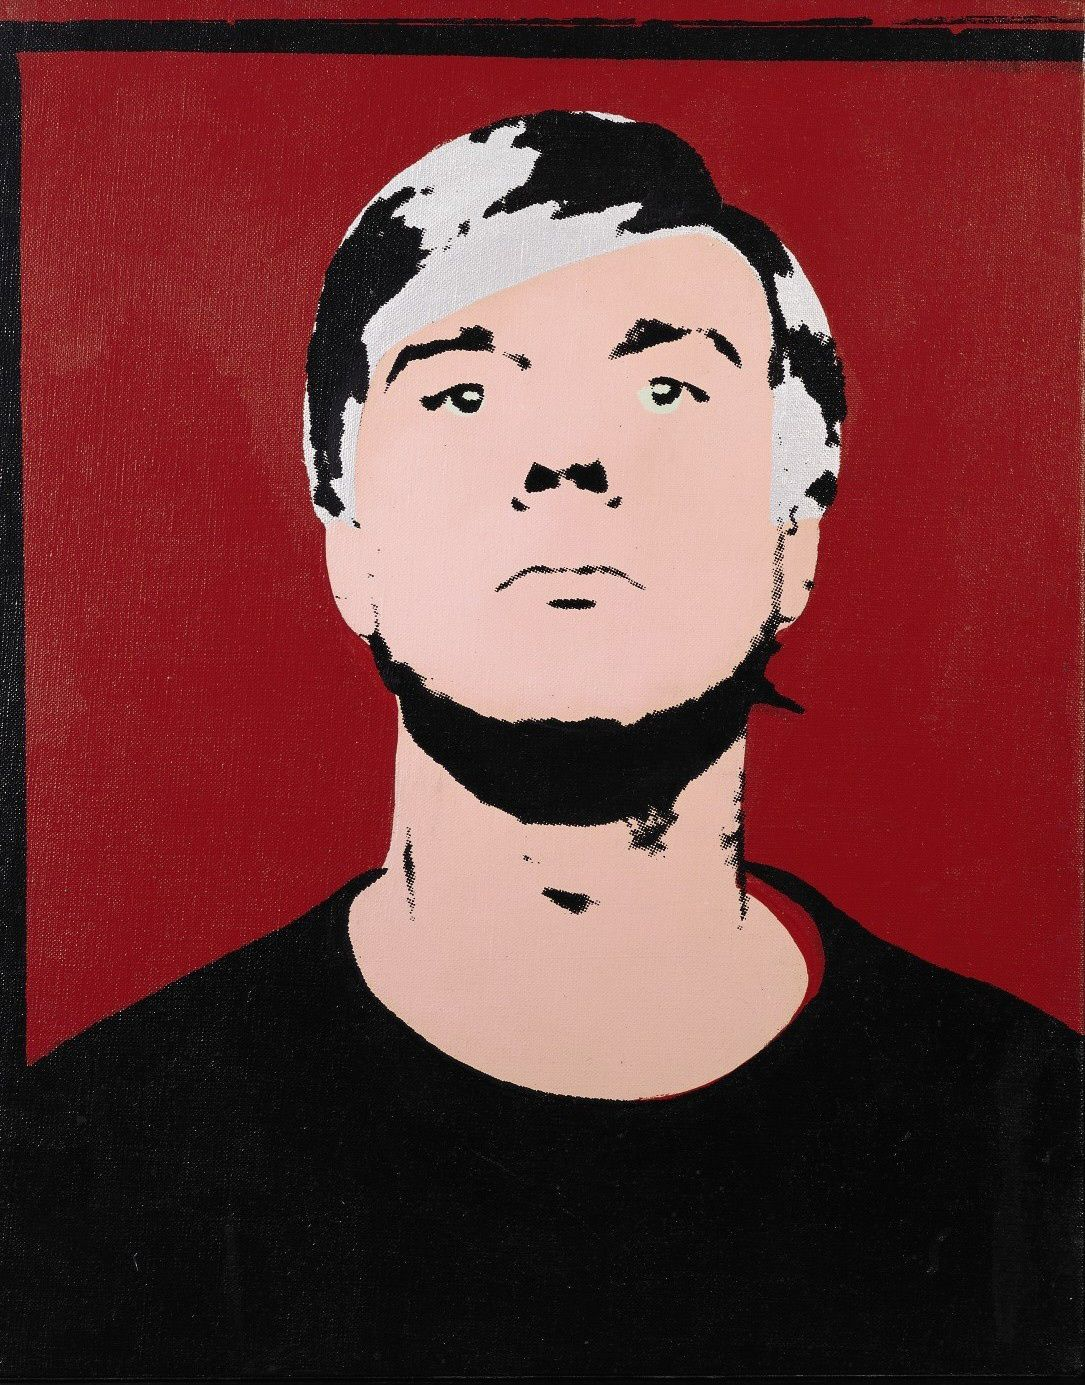 """Zelfportret Andy Warhol uit 1964 Foto AFP/Sotheby's This handout image received 02 November 2006, courtesy of Sotheby's in New York, shows American Andy Warhol's, """"Self-Portrait"""", 1964, estimated at 3.5 million to 4.5 million USD which will be part of the Contemporary Art sale 14-15 November at Sotheby's auction house in New York. Twenty years after his death pop art icon Andy Warhol is a seminal influence for contemporary artists and a collectors' darling, even though what drove the man and his art remains a mystery. 22 February, 2007 marks the 20th anniversary of Warhol's passing. AFP PHOTO/SOTHEBY'S =GETTY OUT= = NO SALES ="""